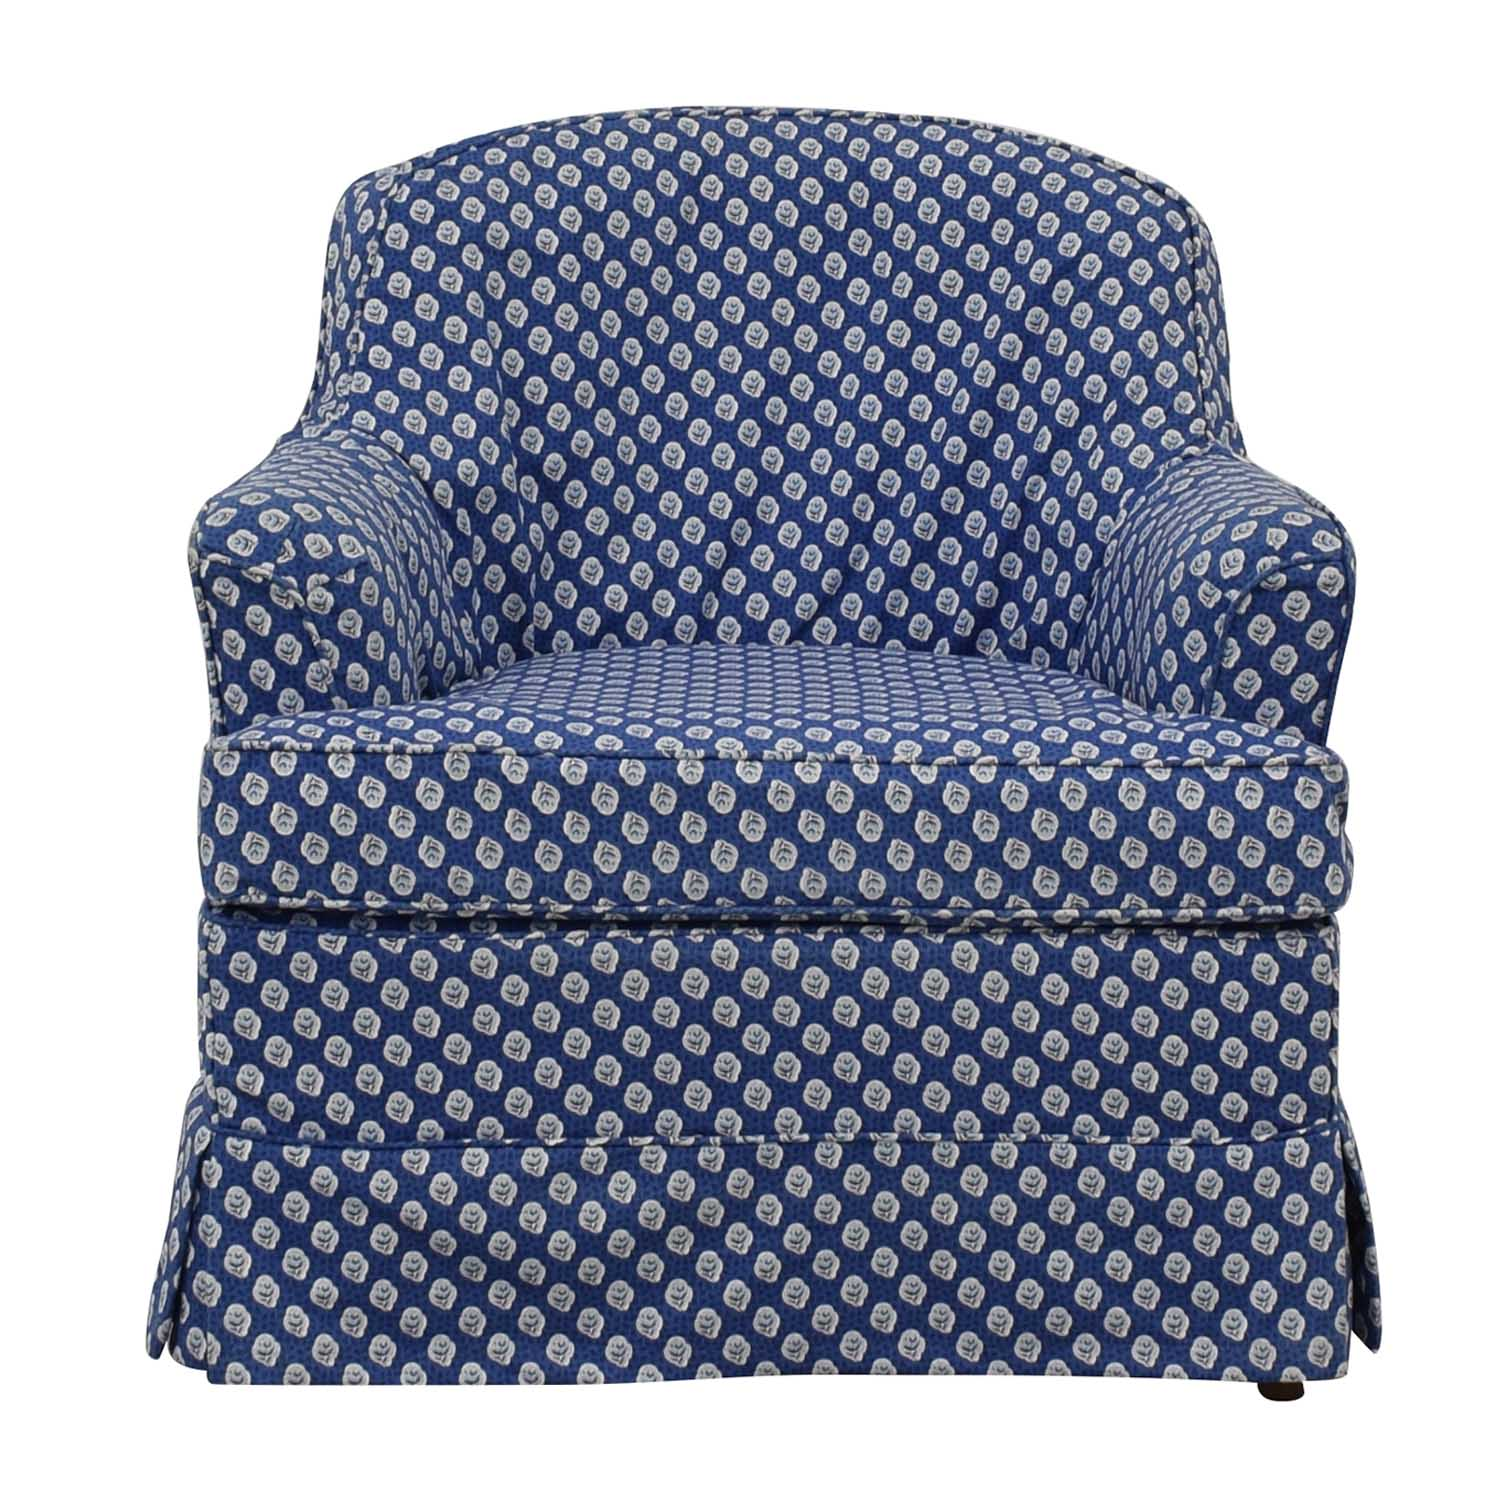 Drexel Heritage Drexel Heritage Art Shoppe Living Room Chair coupon